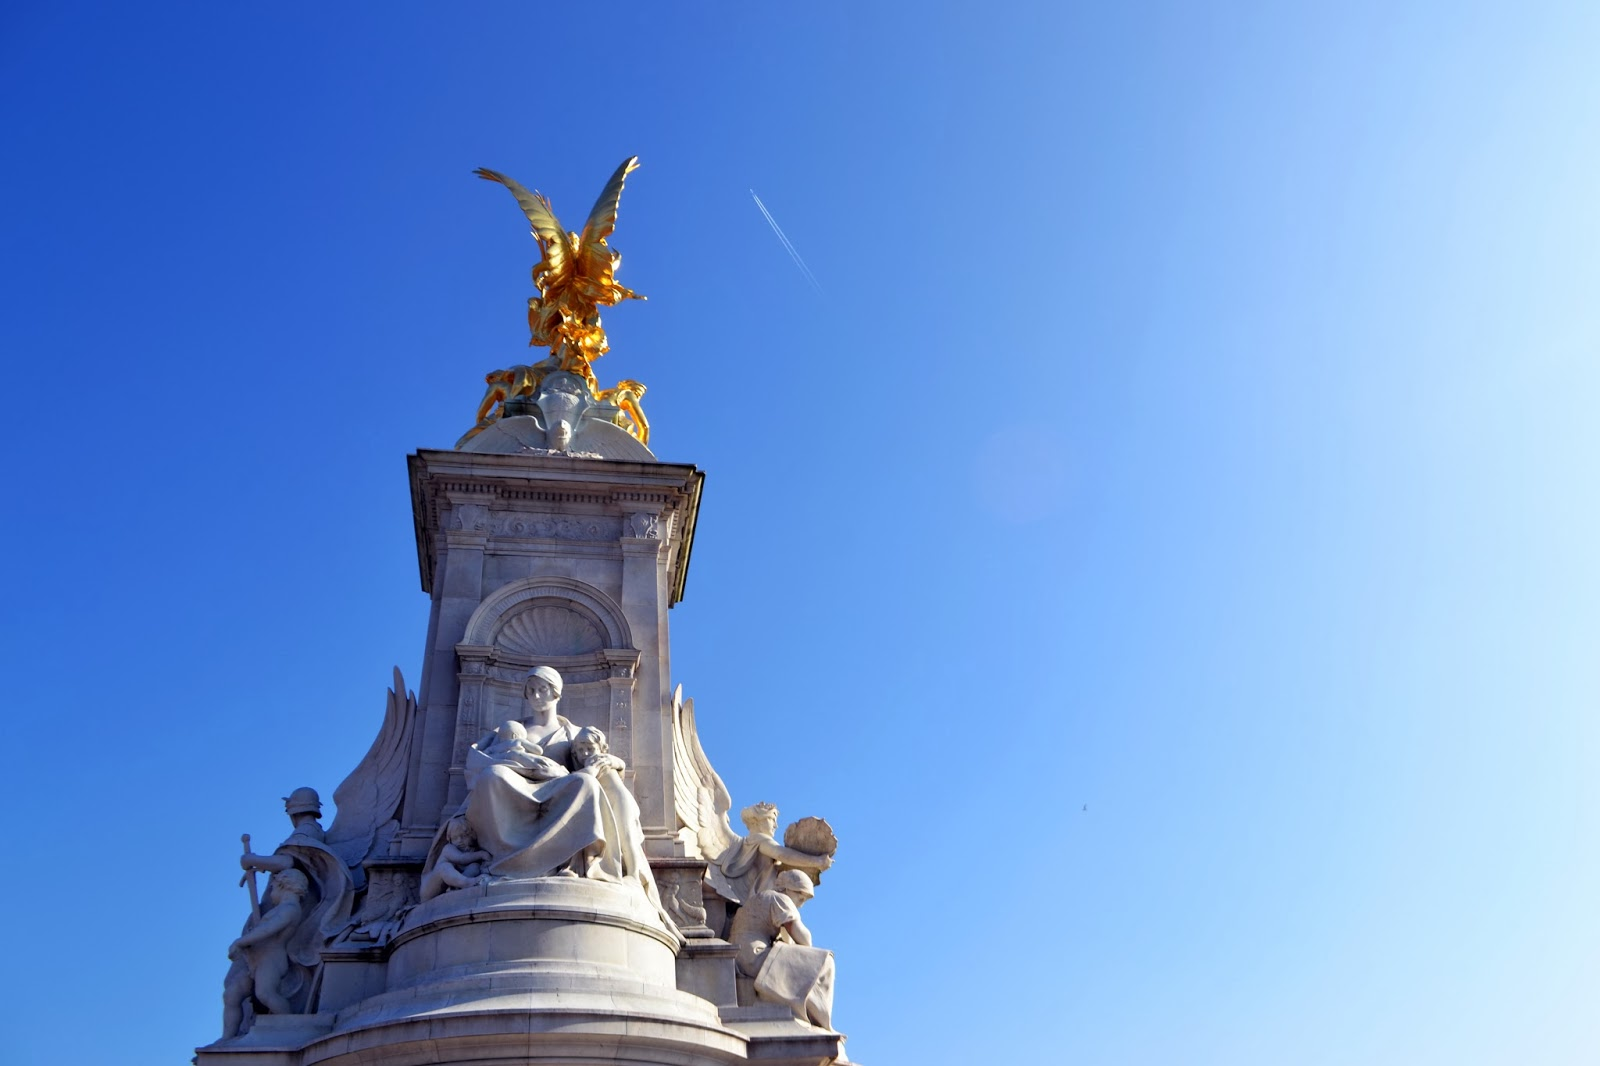 the top of the Queen Victoria Memorial. a golden bird can be seen on top.